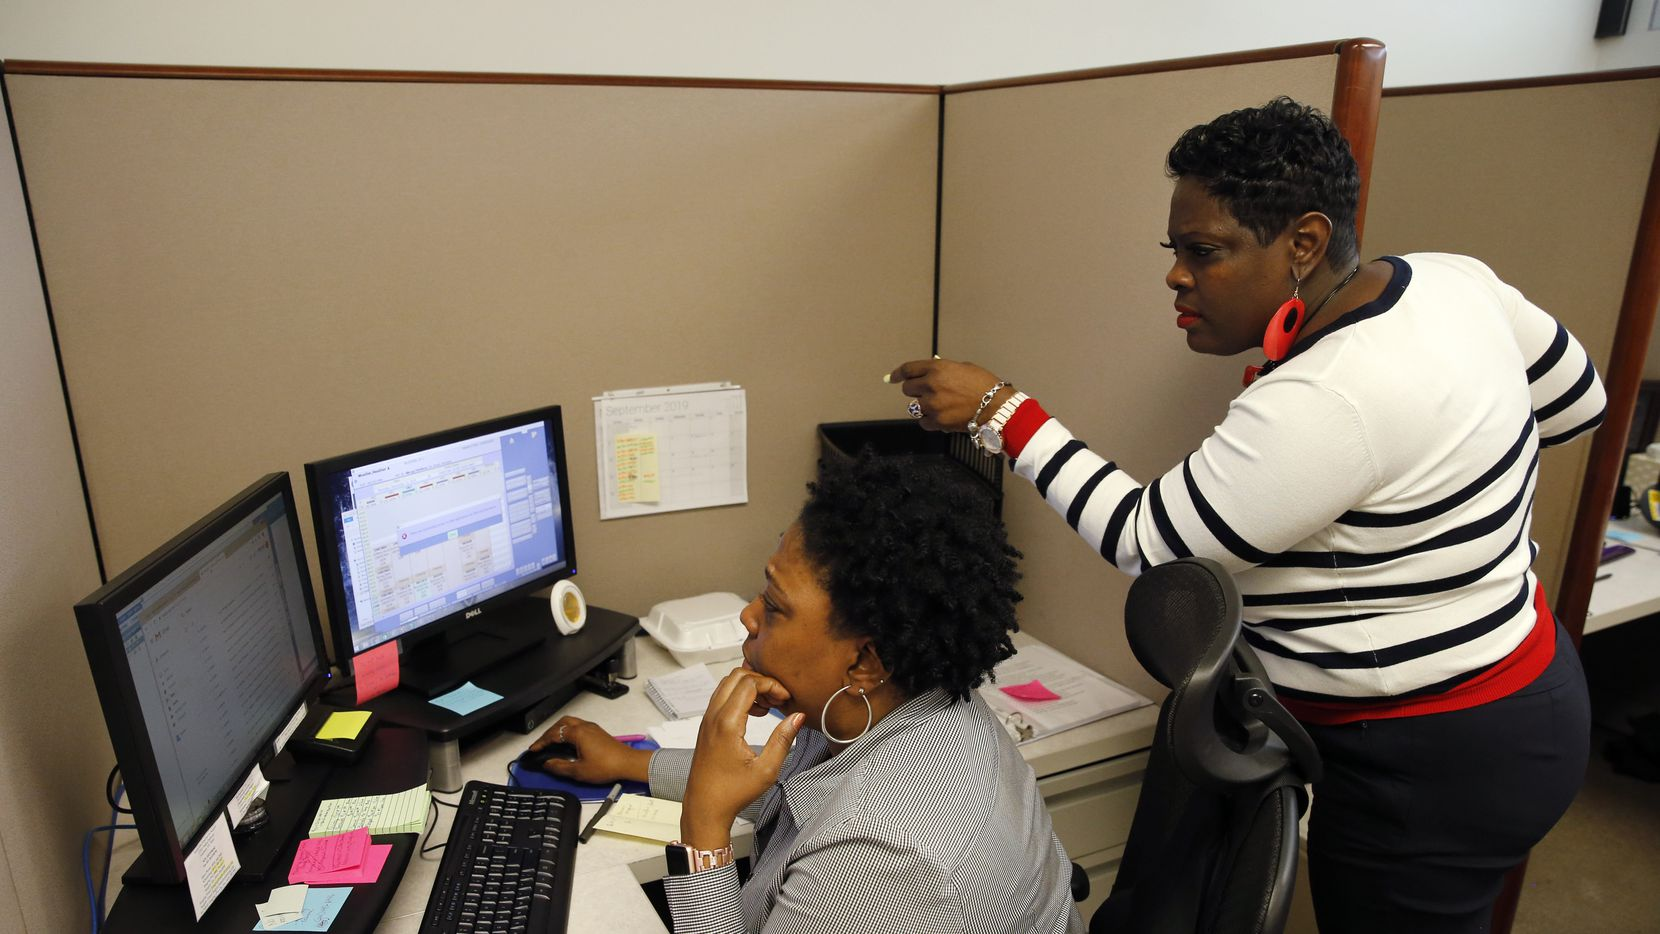 Tangela Matthews (left) and Yolanda Morris work in the central scheduling office at Methodist Hospital for Surgery in Addison.